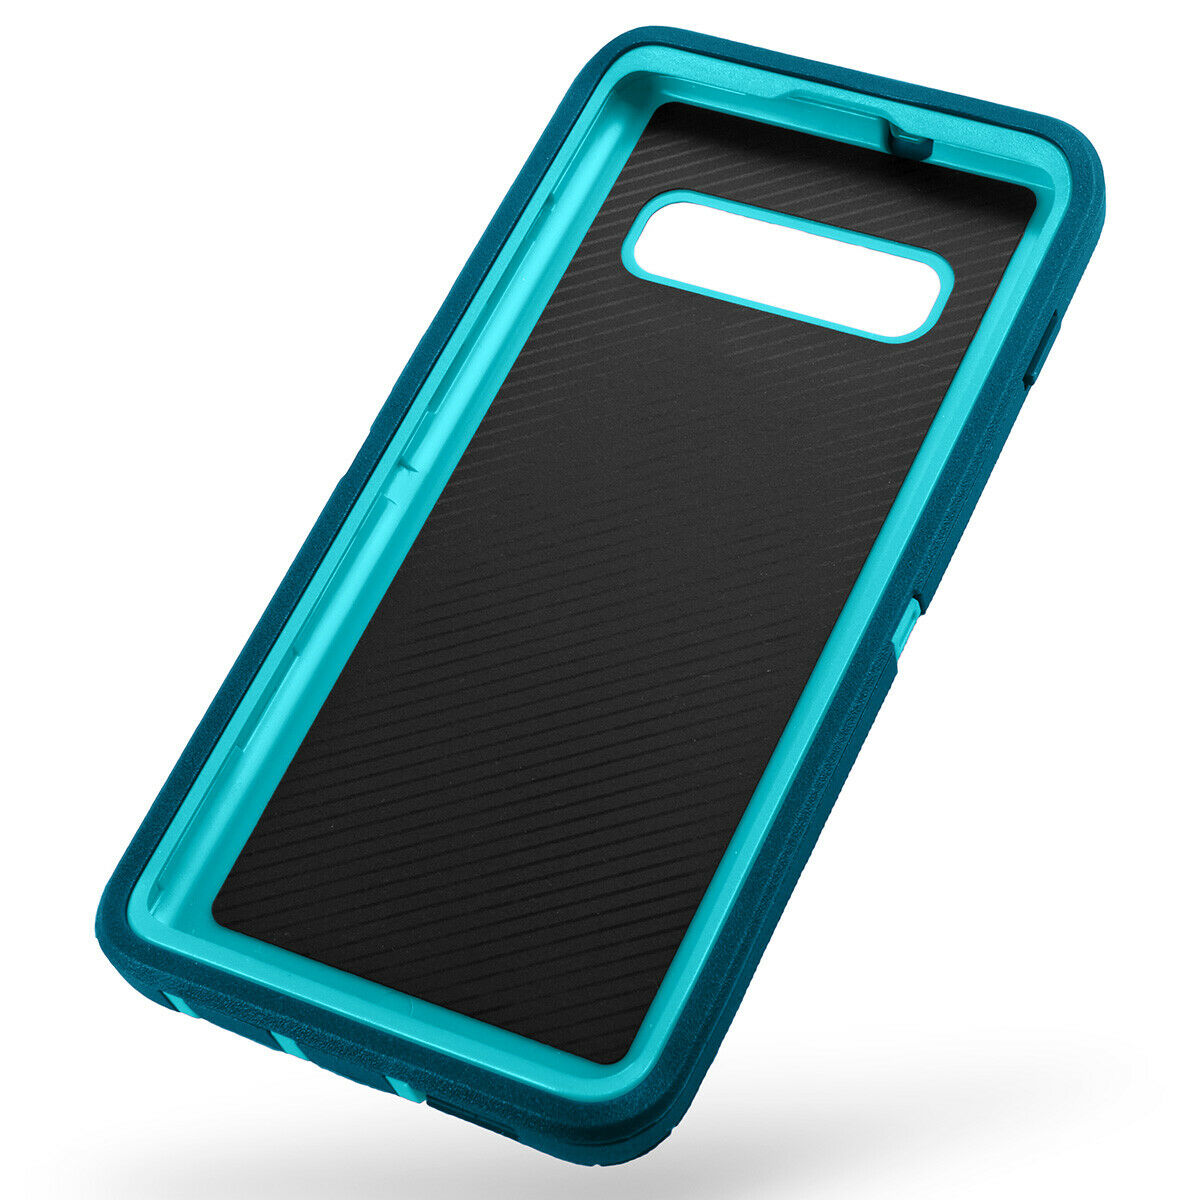 Samsung Galaxy S10+ Case Shockproof Hybrid Rubber Armor Rugged Cover-Dark Blue/Light Blue